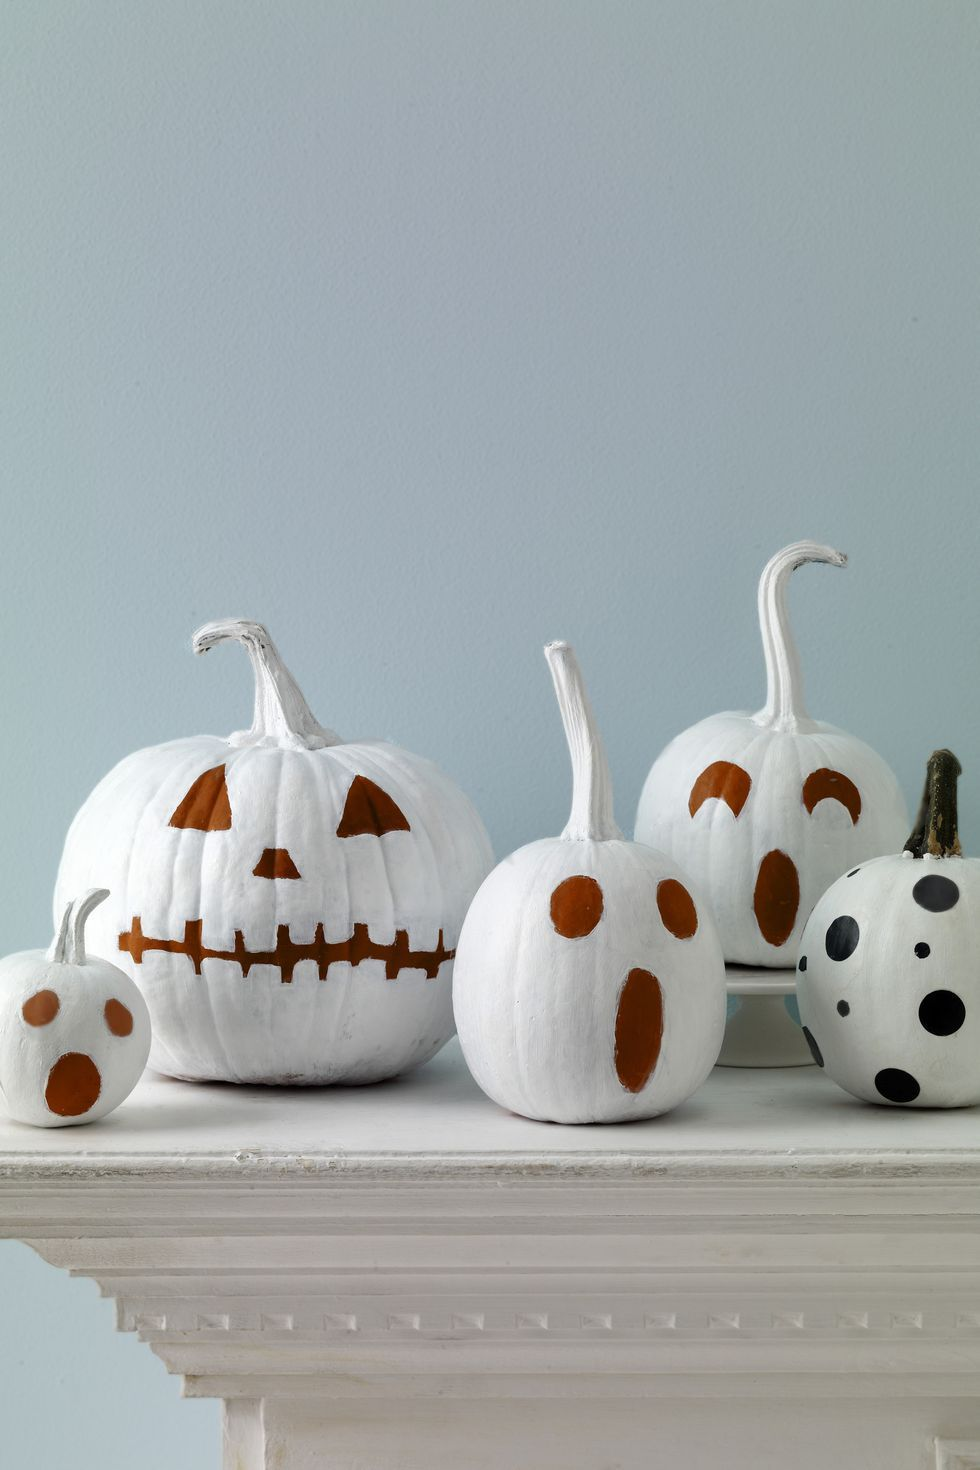 14 Elegant Halloween Decorations - Shop Classy Halloween Decor Ideas